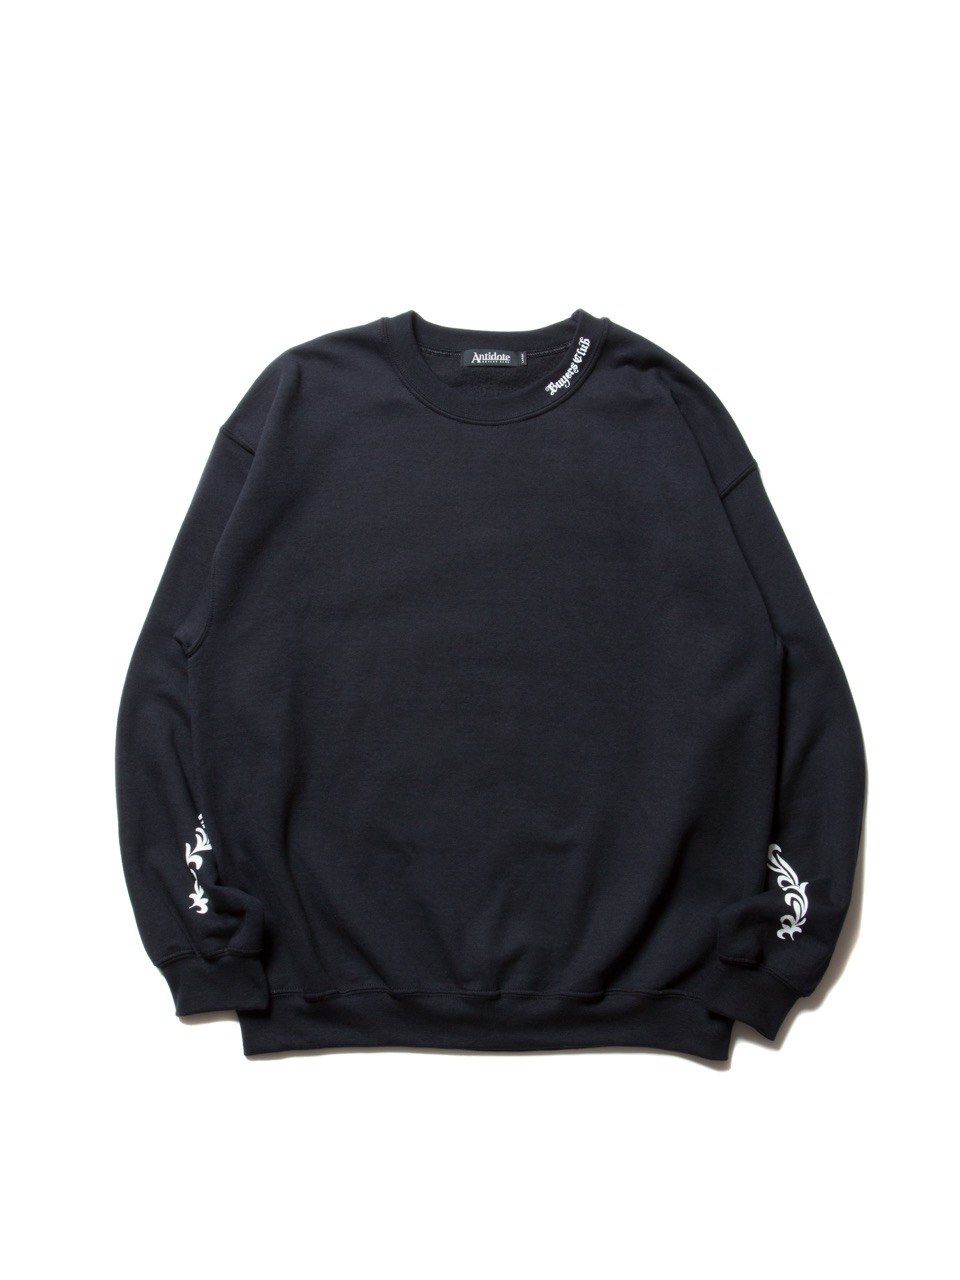 ANTIDOTE BUYERS CLUB Crewneck L/S Sweatshirt ORNAMENT